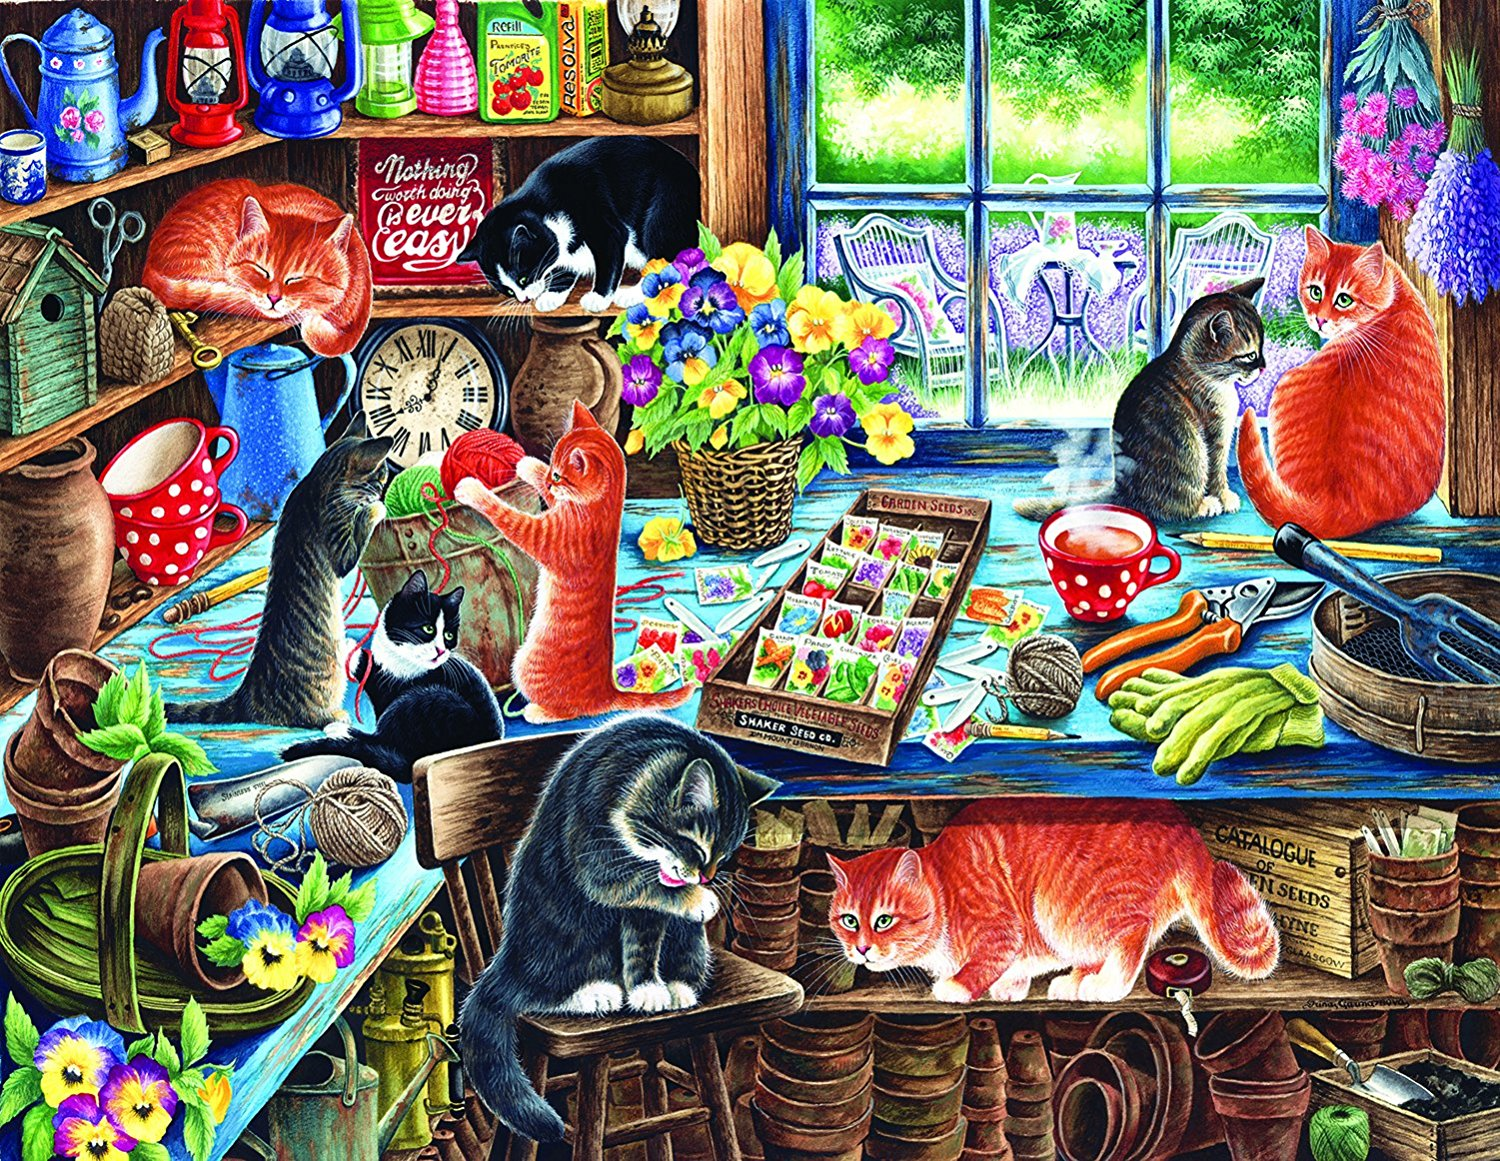 In a Garden Shed by Sunsout 1000 piece Jigsaw Puzzle